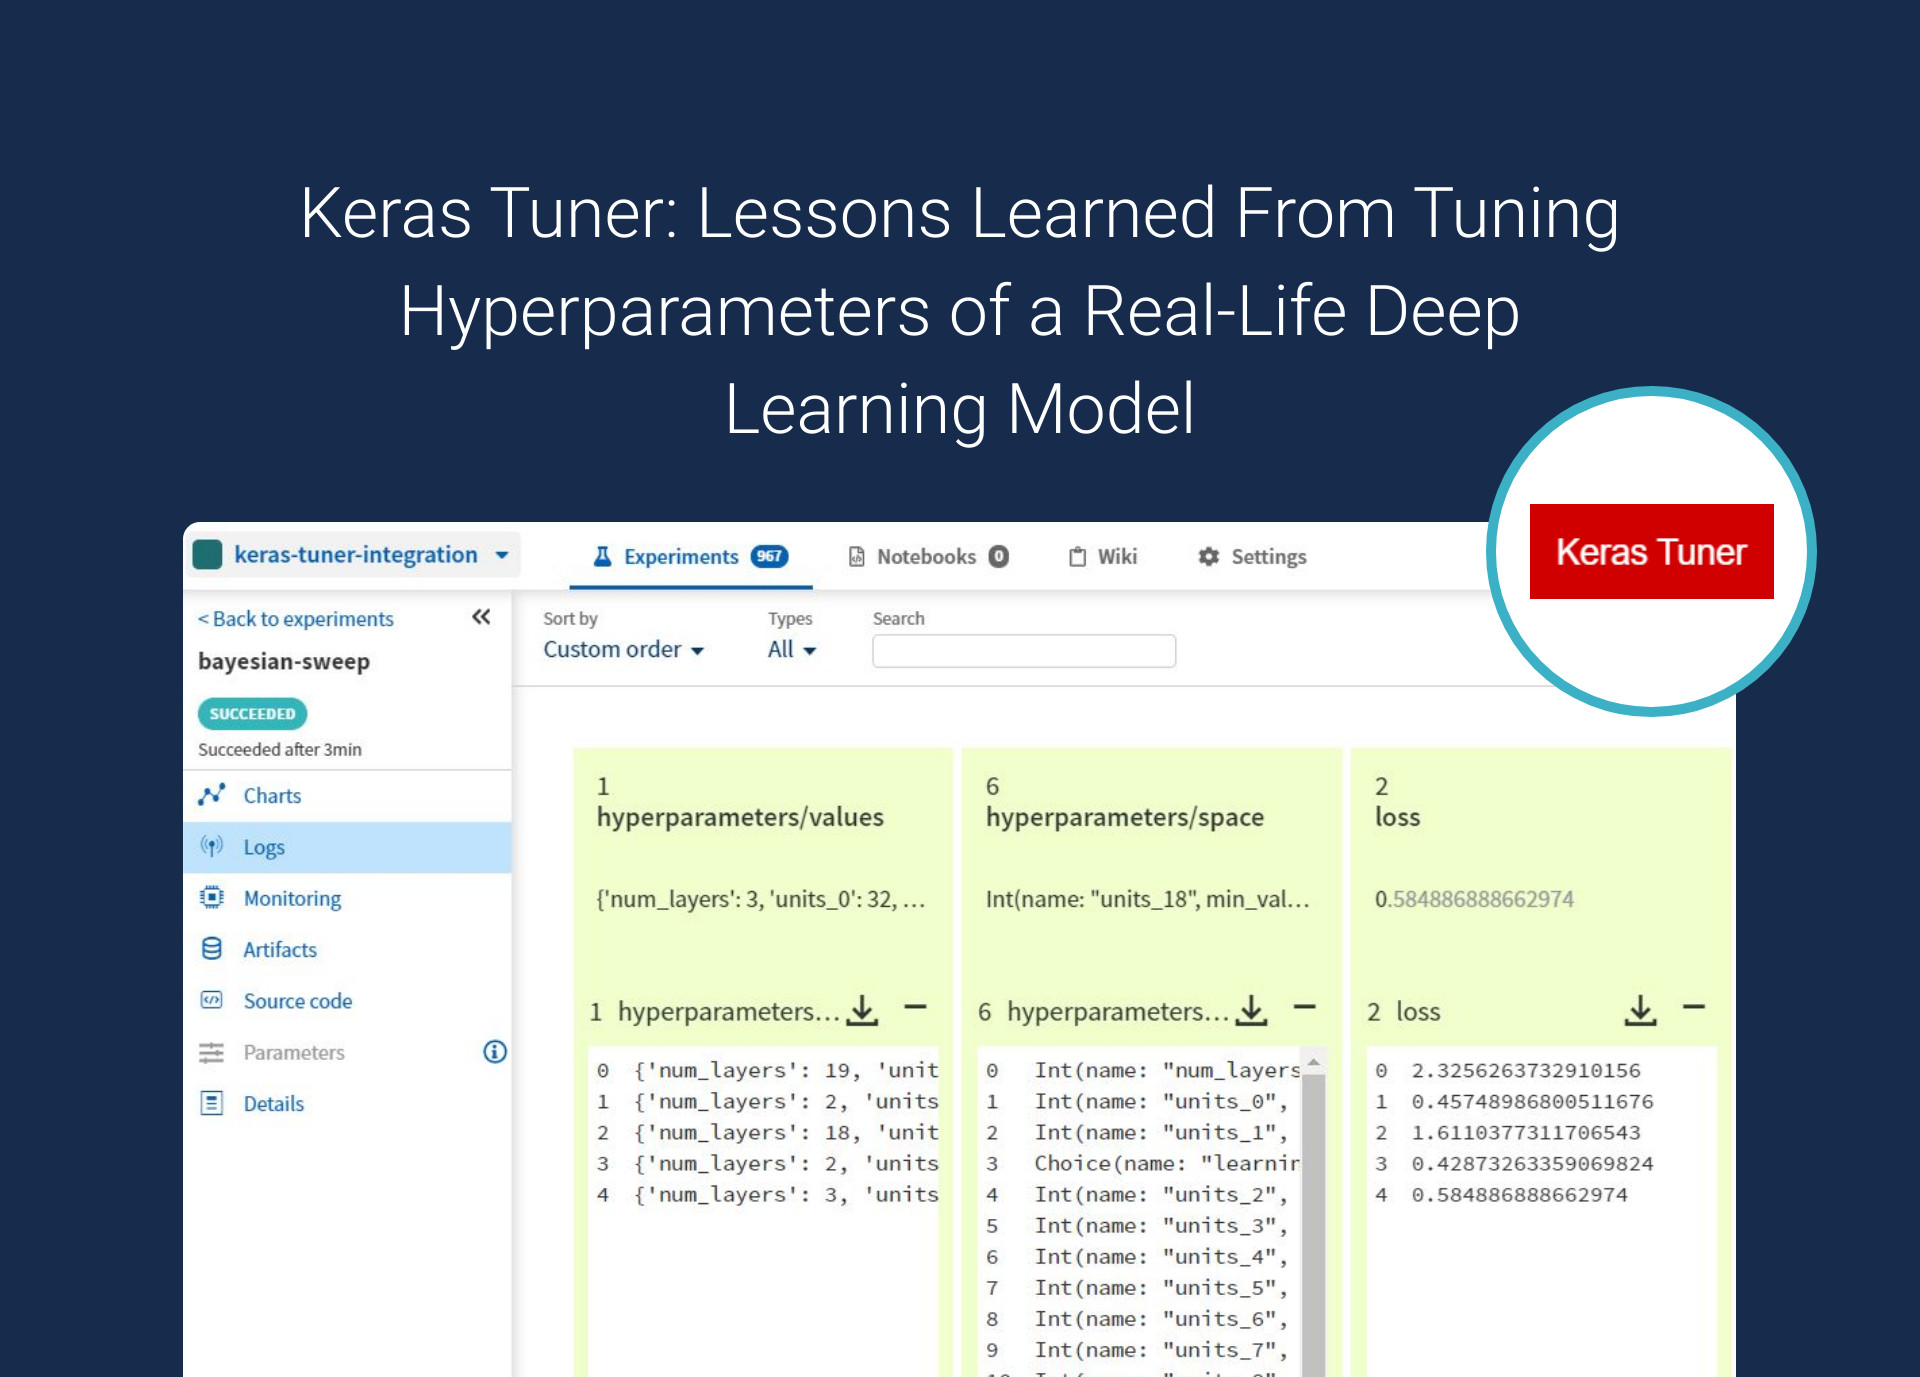 Keras Tuner: Lessons Learned From Tuning Hyperparameters of a Real-Life Deep Learning Model